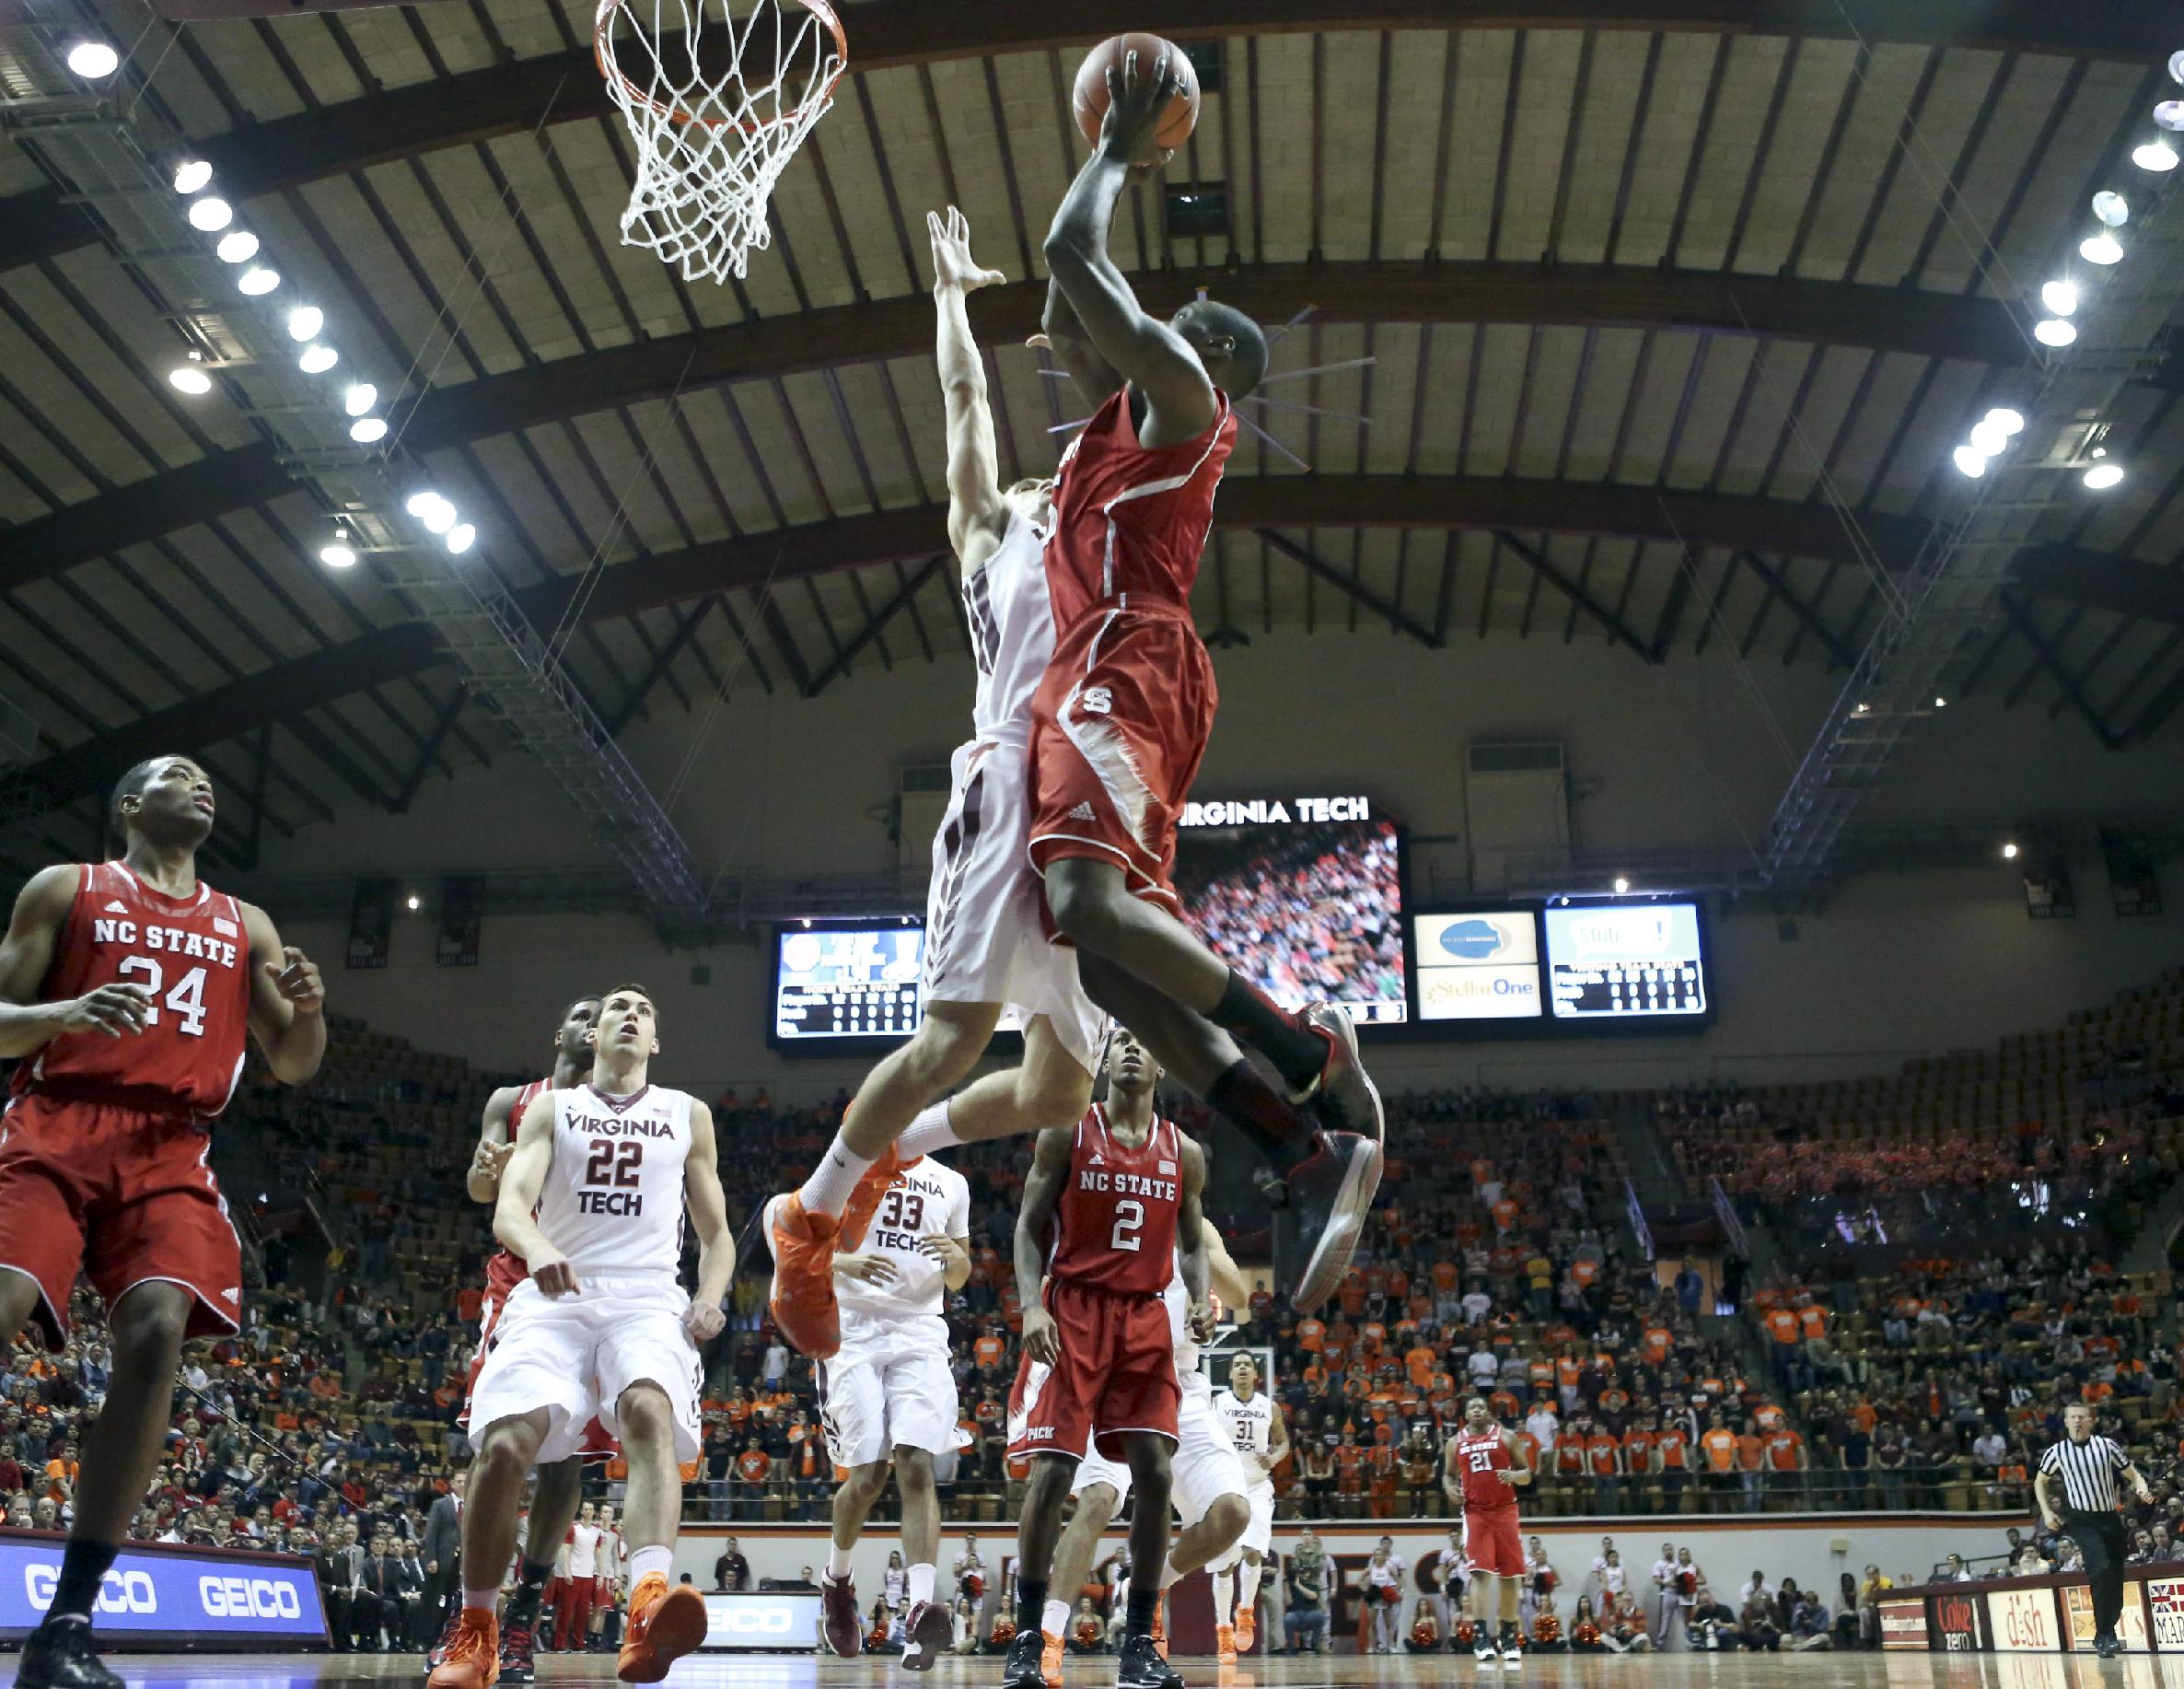 N.C. State's Desmond Lee, right, goes up for a shot against Virginia Tech's Devin Wilson during first half of an NCAA college basketball game in Blacksburg, Va., Saturday, Feb. 22 2014